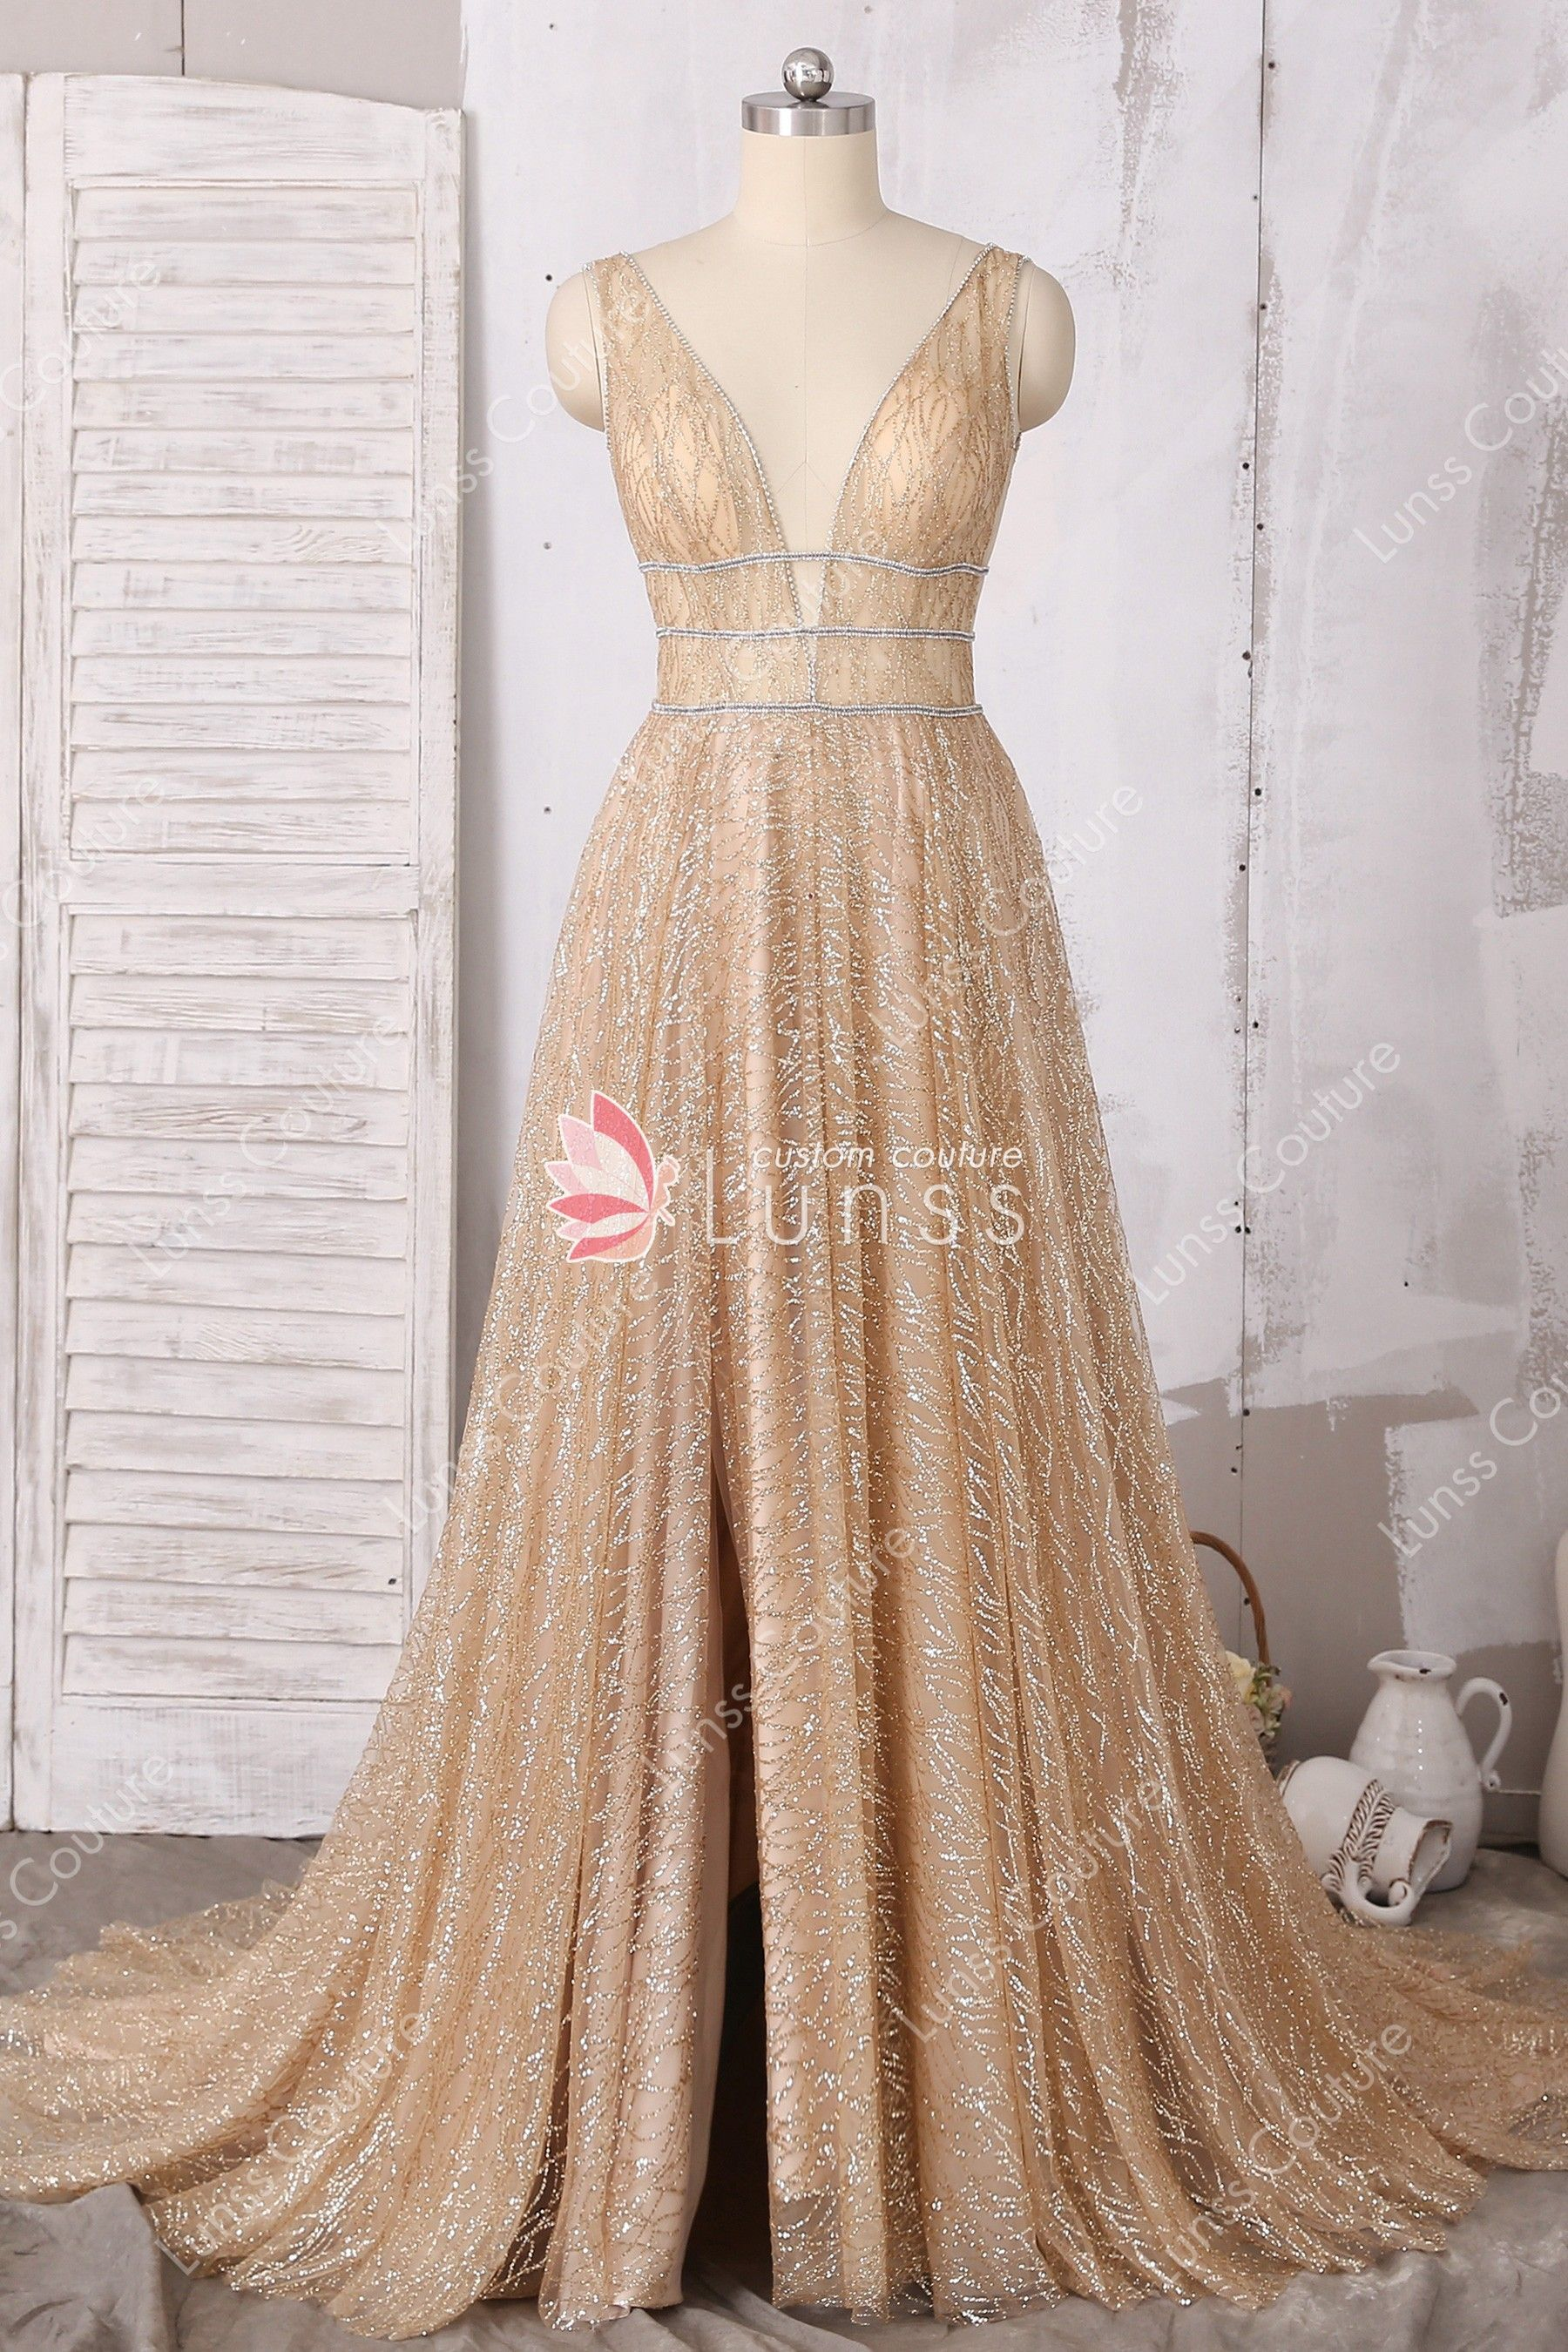 d2406066664 Dazzling Custom Gold Sleeveless Plunging Neck A-line Prom Dress in ...